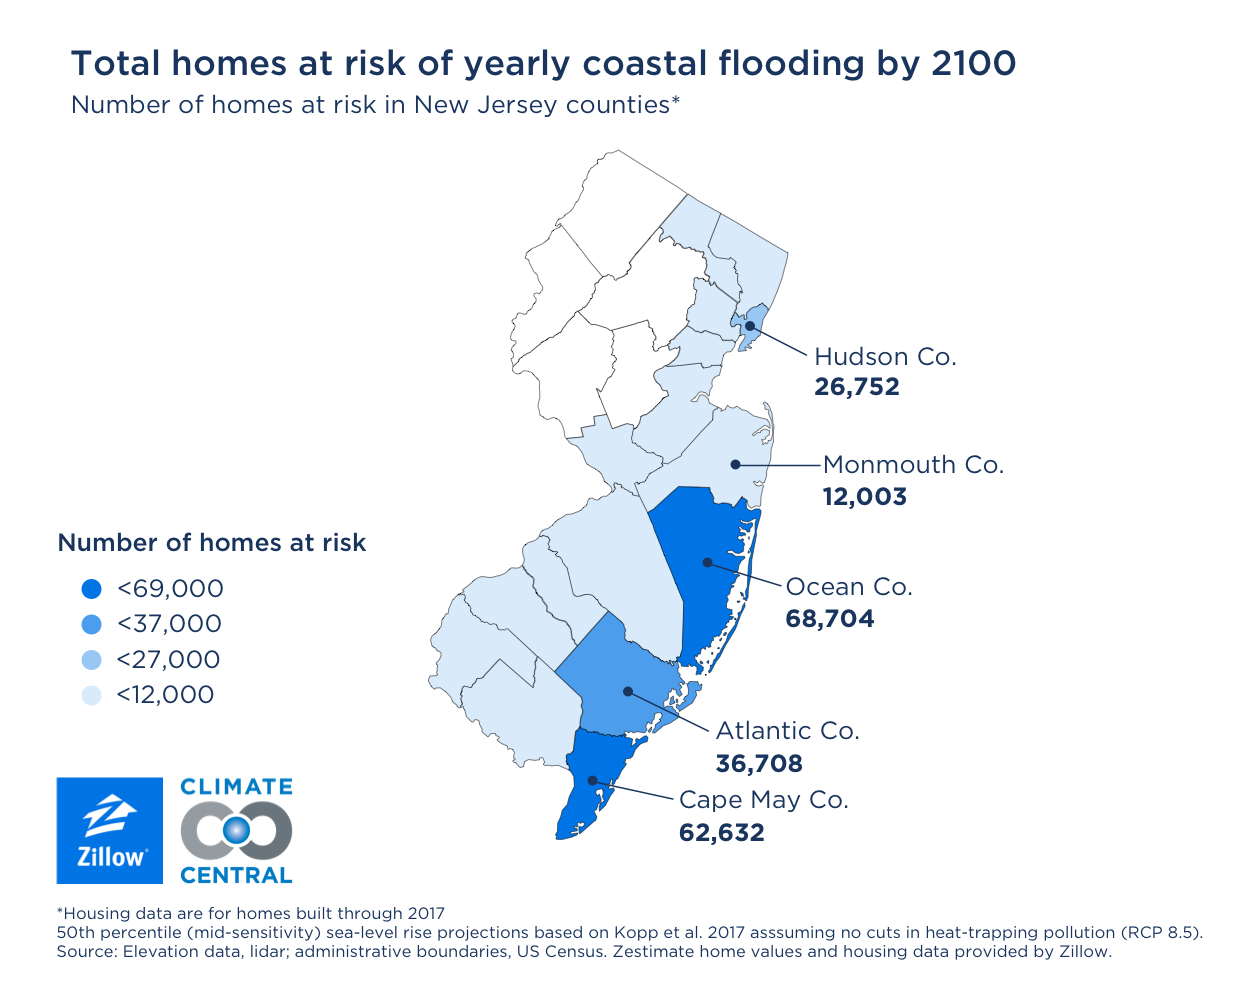 More Than 386,000 Homes at Risk of Coastal Flooding by 2050 - Zillow Zillow Heat Map on microsoft heat map, walmart heat map, foreclosure heat map, business heat map, trulia heat map, home heat map, mortgage heat map, research heat map, bing heat map, verizon heat map, local heat map, social media heat map, twitter heat map, google heat map, linkedin heat map, dow heat map, marketing heat map, word heat map, foursquare heat map, finviz heat map,